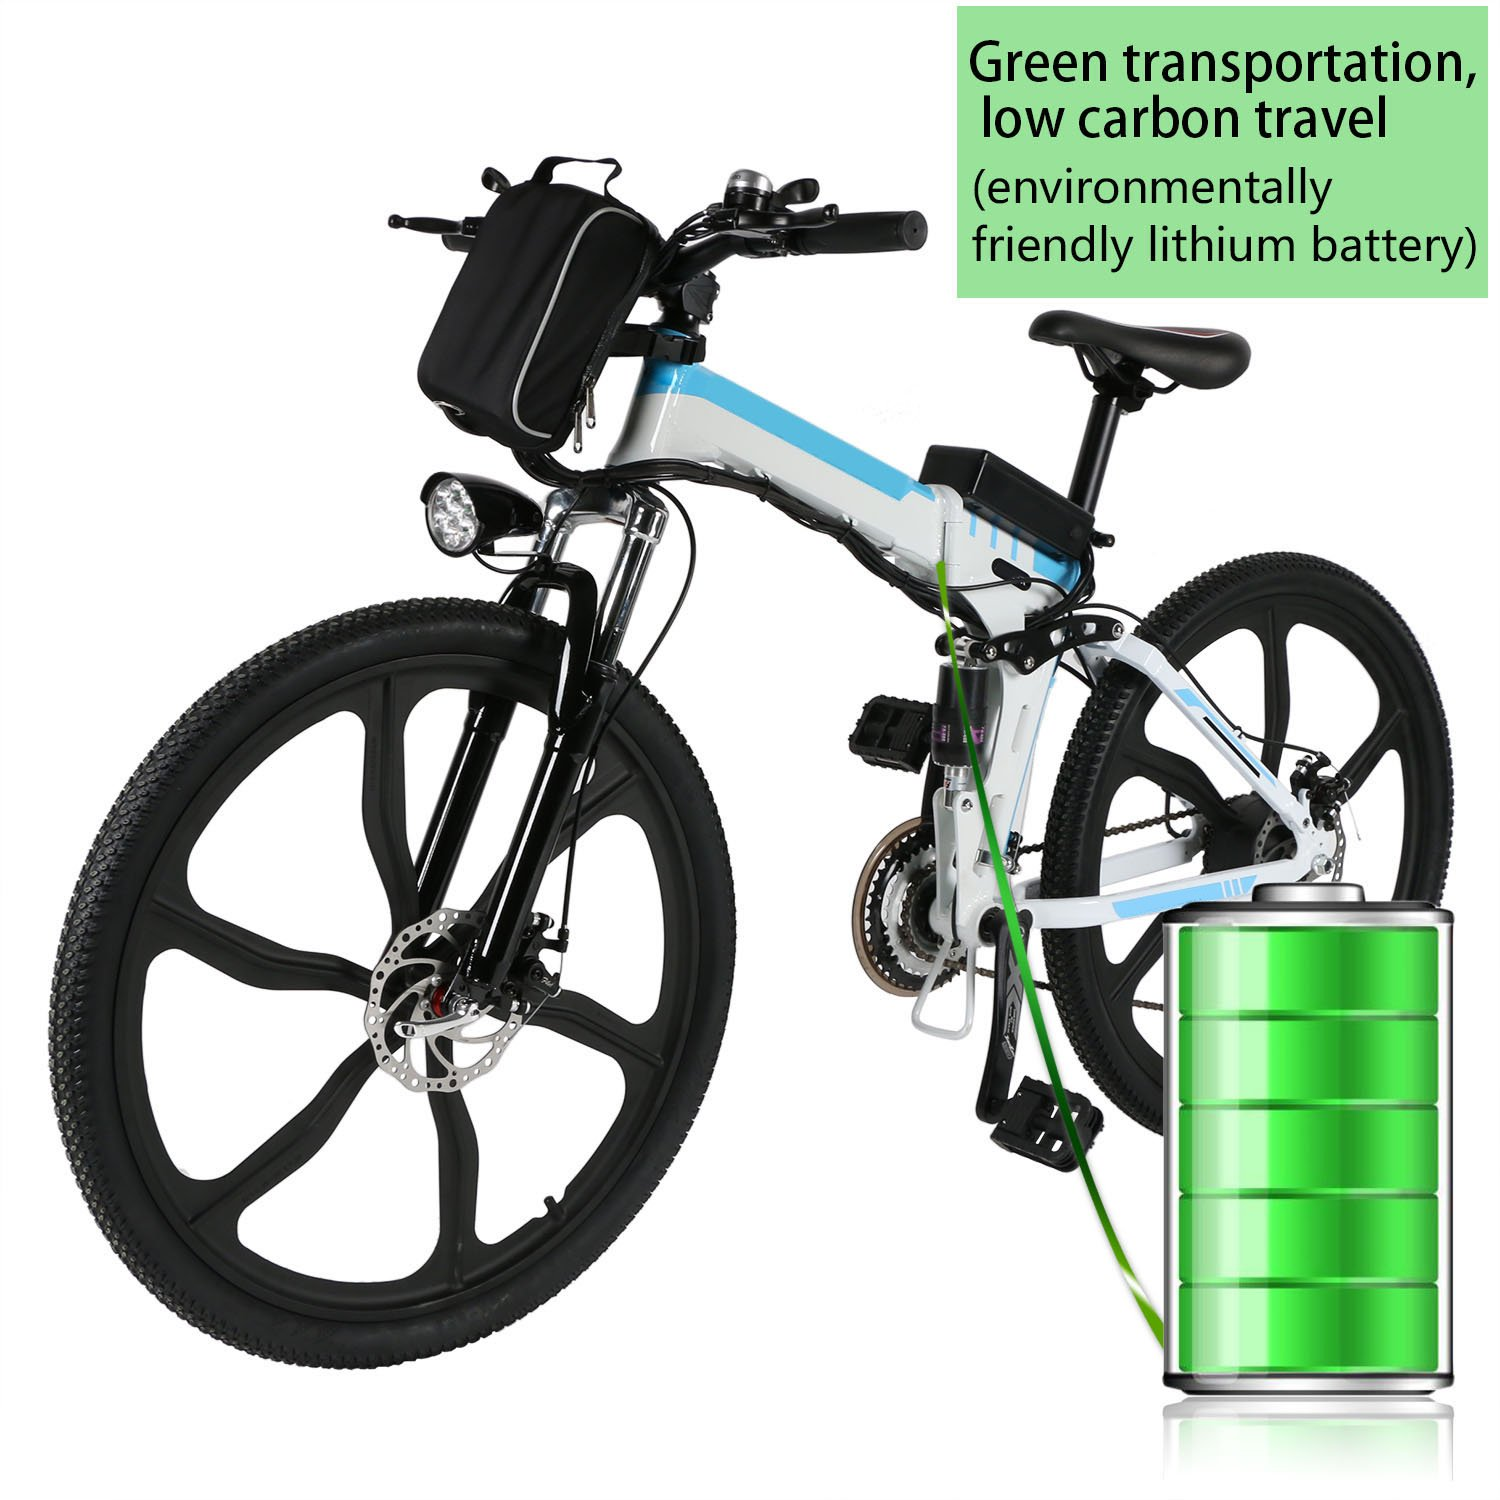 Kemanner 26 inch Electric Mountain Bike 21 Speed 36V 8A Lithium Battery  Electric Bicycle for Adult eedd699cc